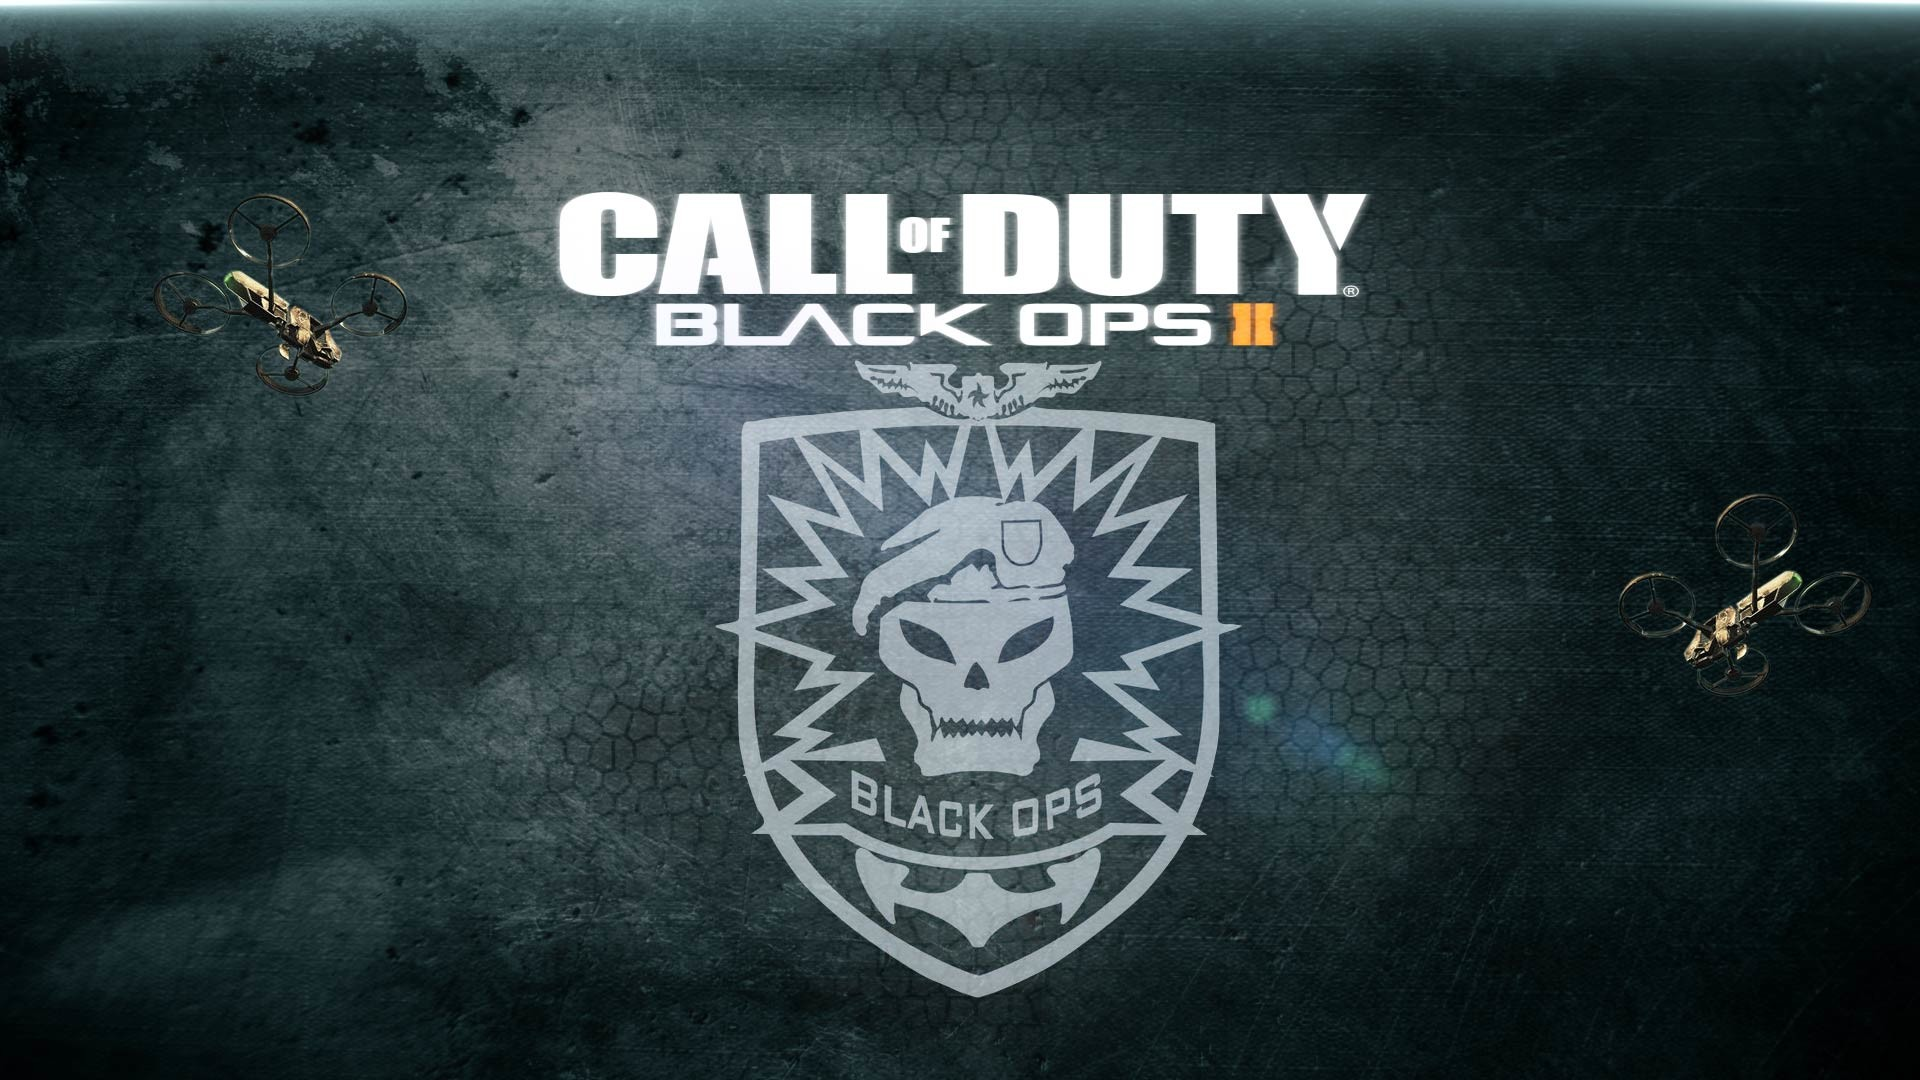 Wallpapers For > Call Of Duty Black Ops 2 Wallpaper 1080p